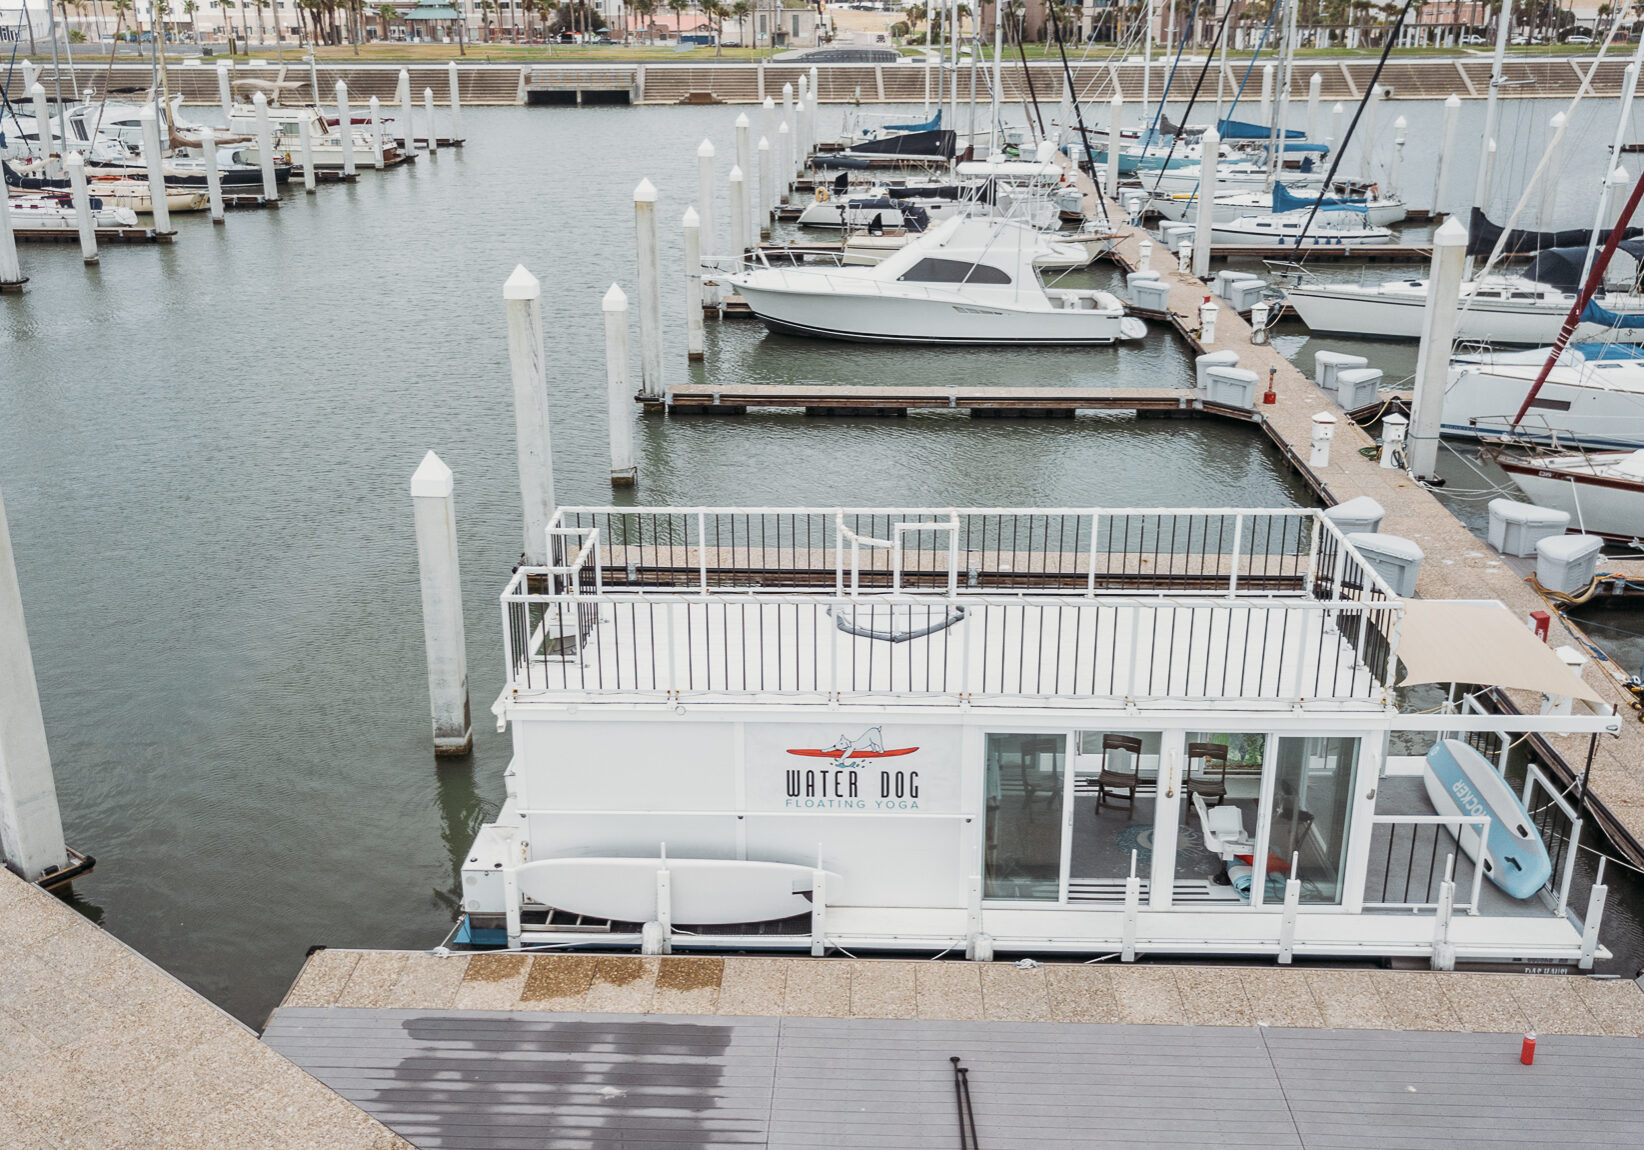 Yoga on the deck of the houseboat studio in the Corpus Christi Marina